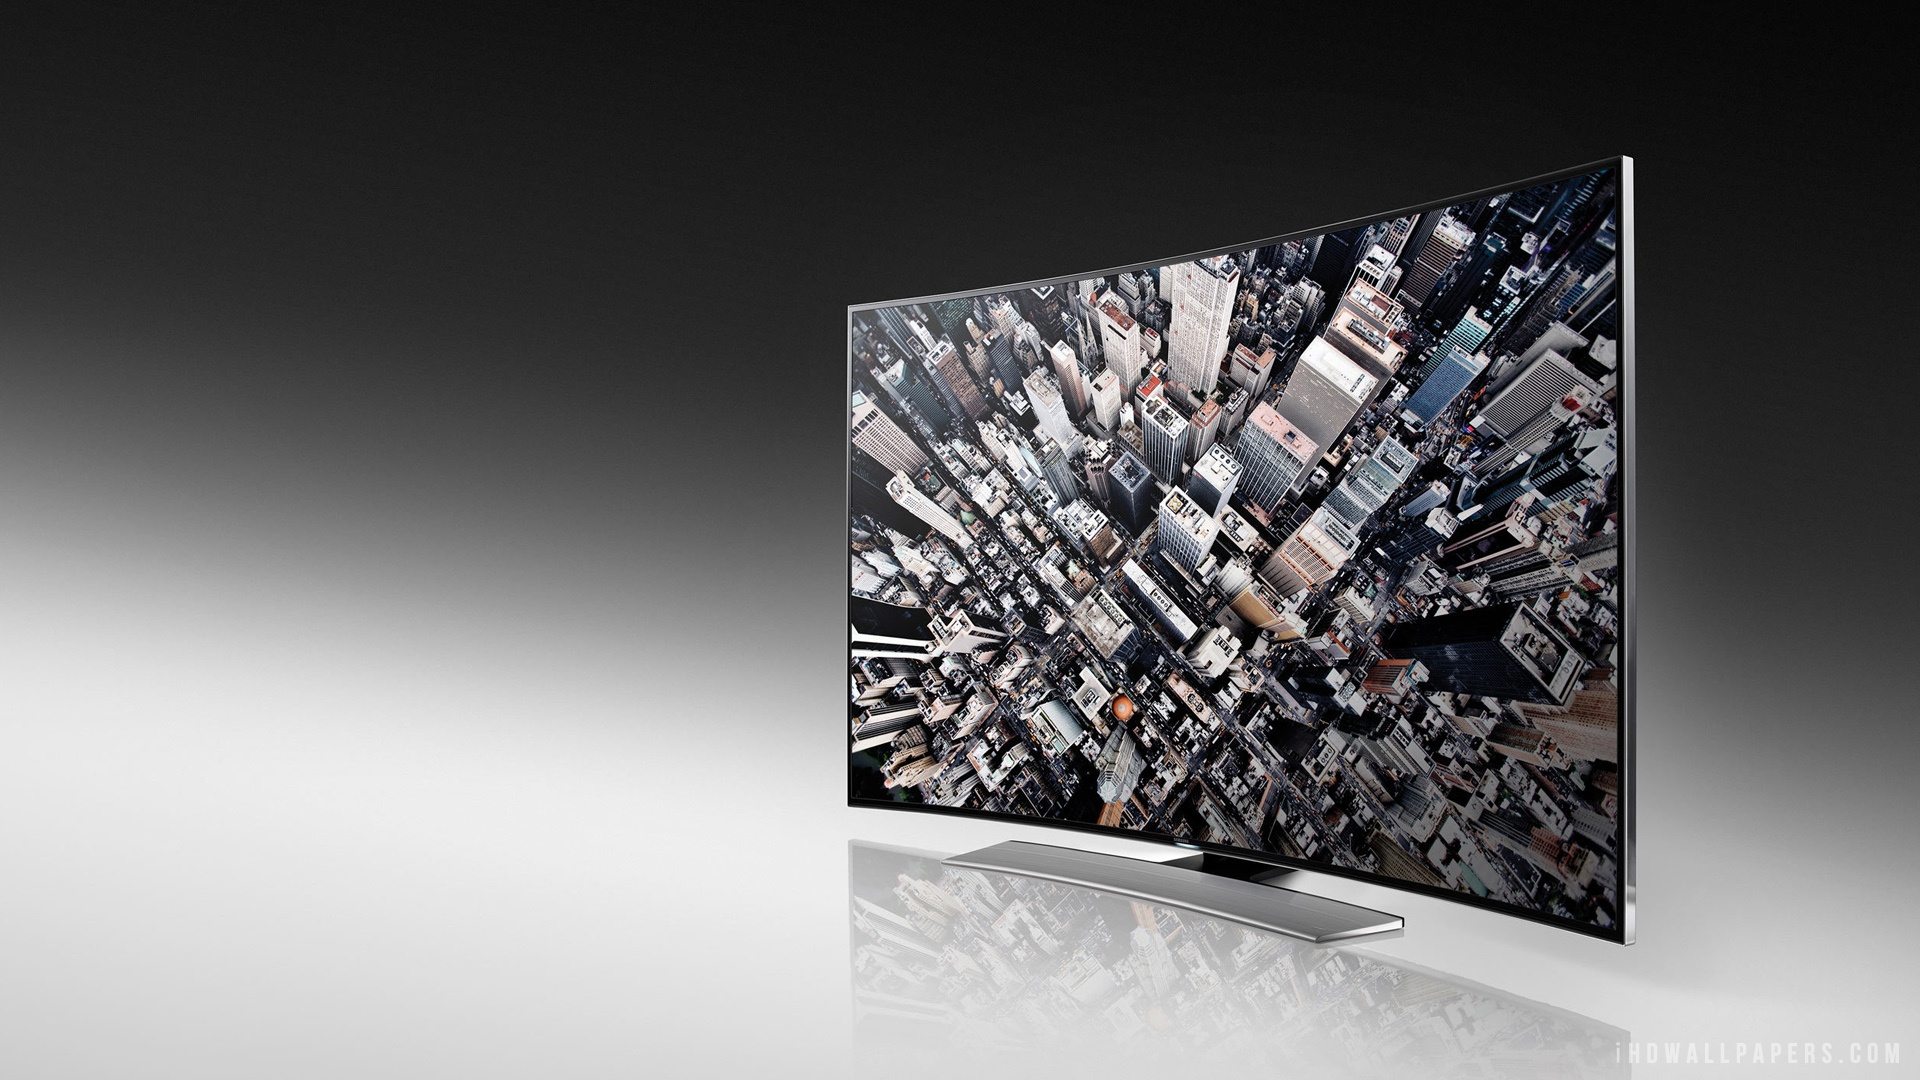 Samsung Uhd Curved Tv 2014 , HD Wallpaper & Backgrounds